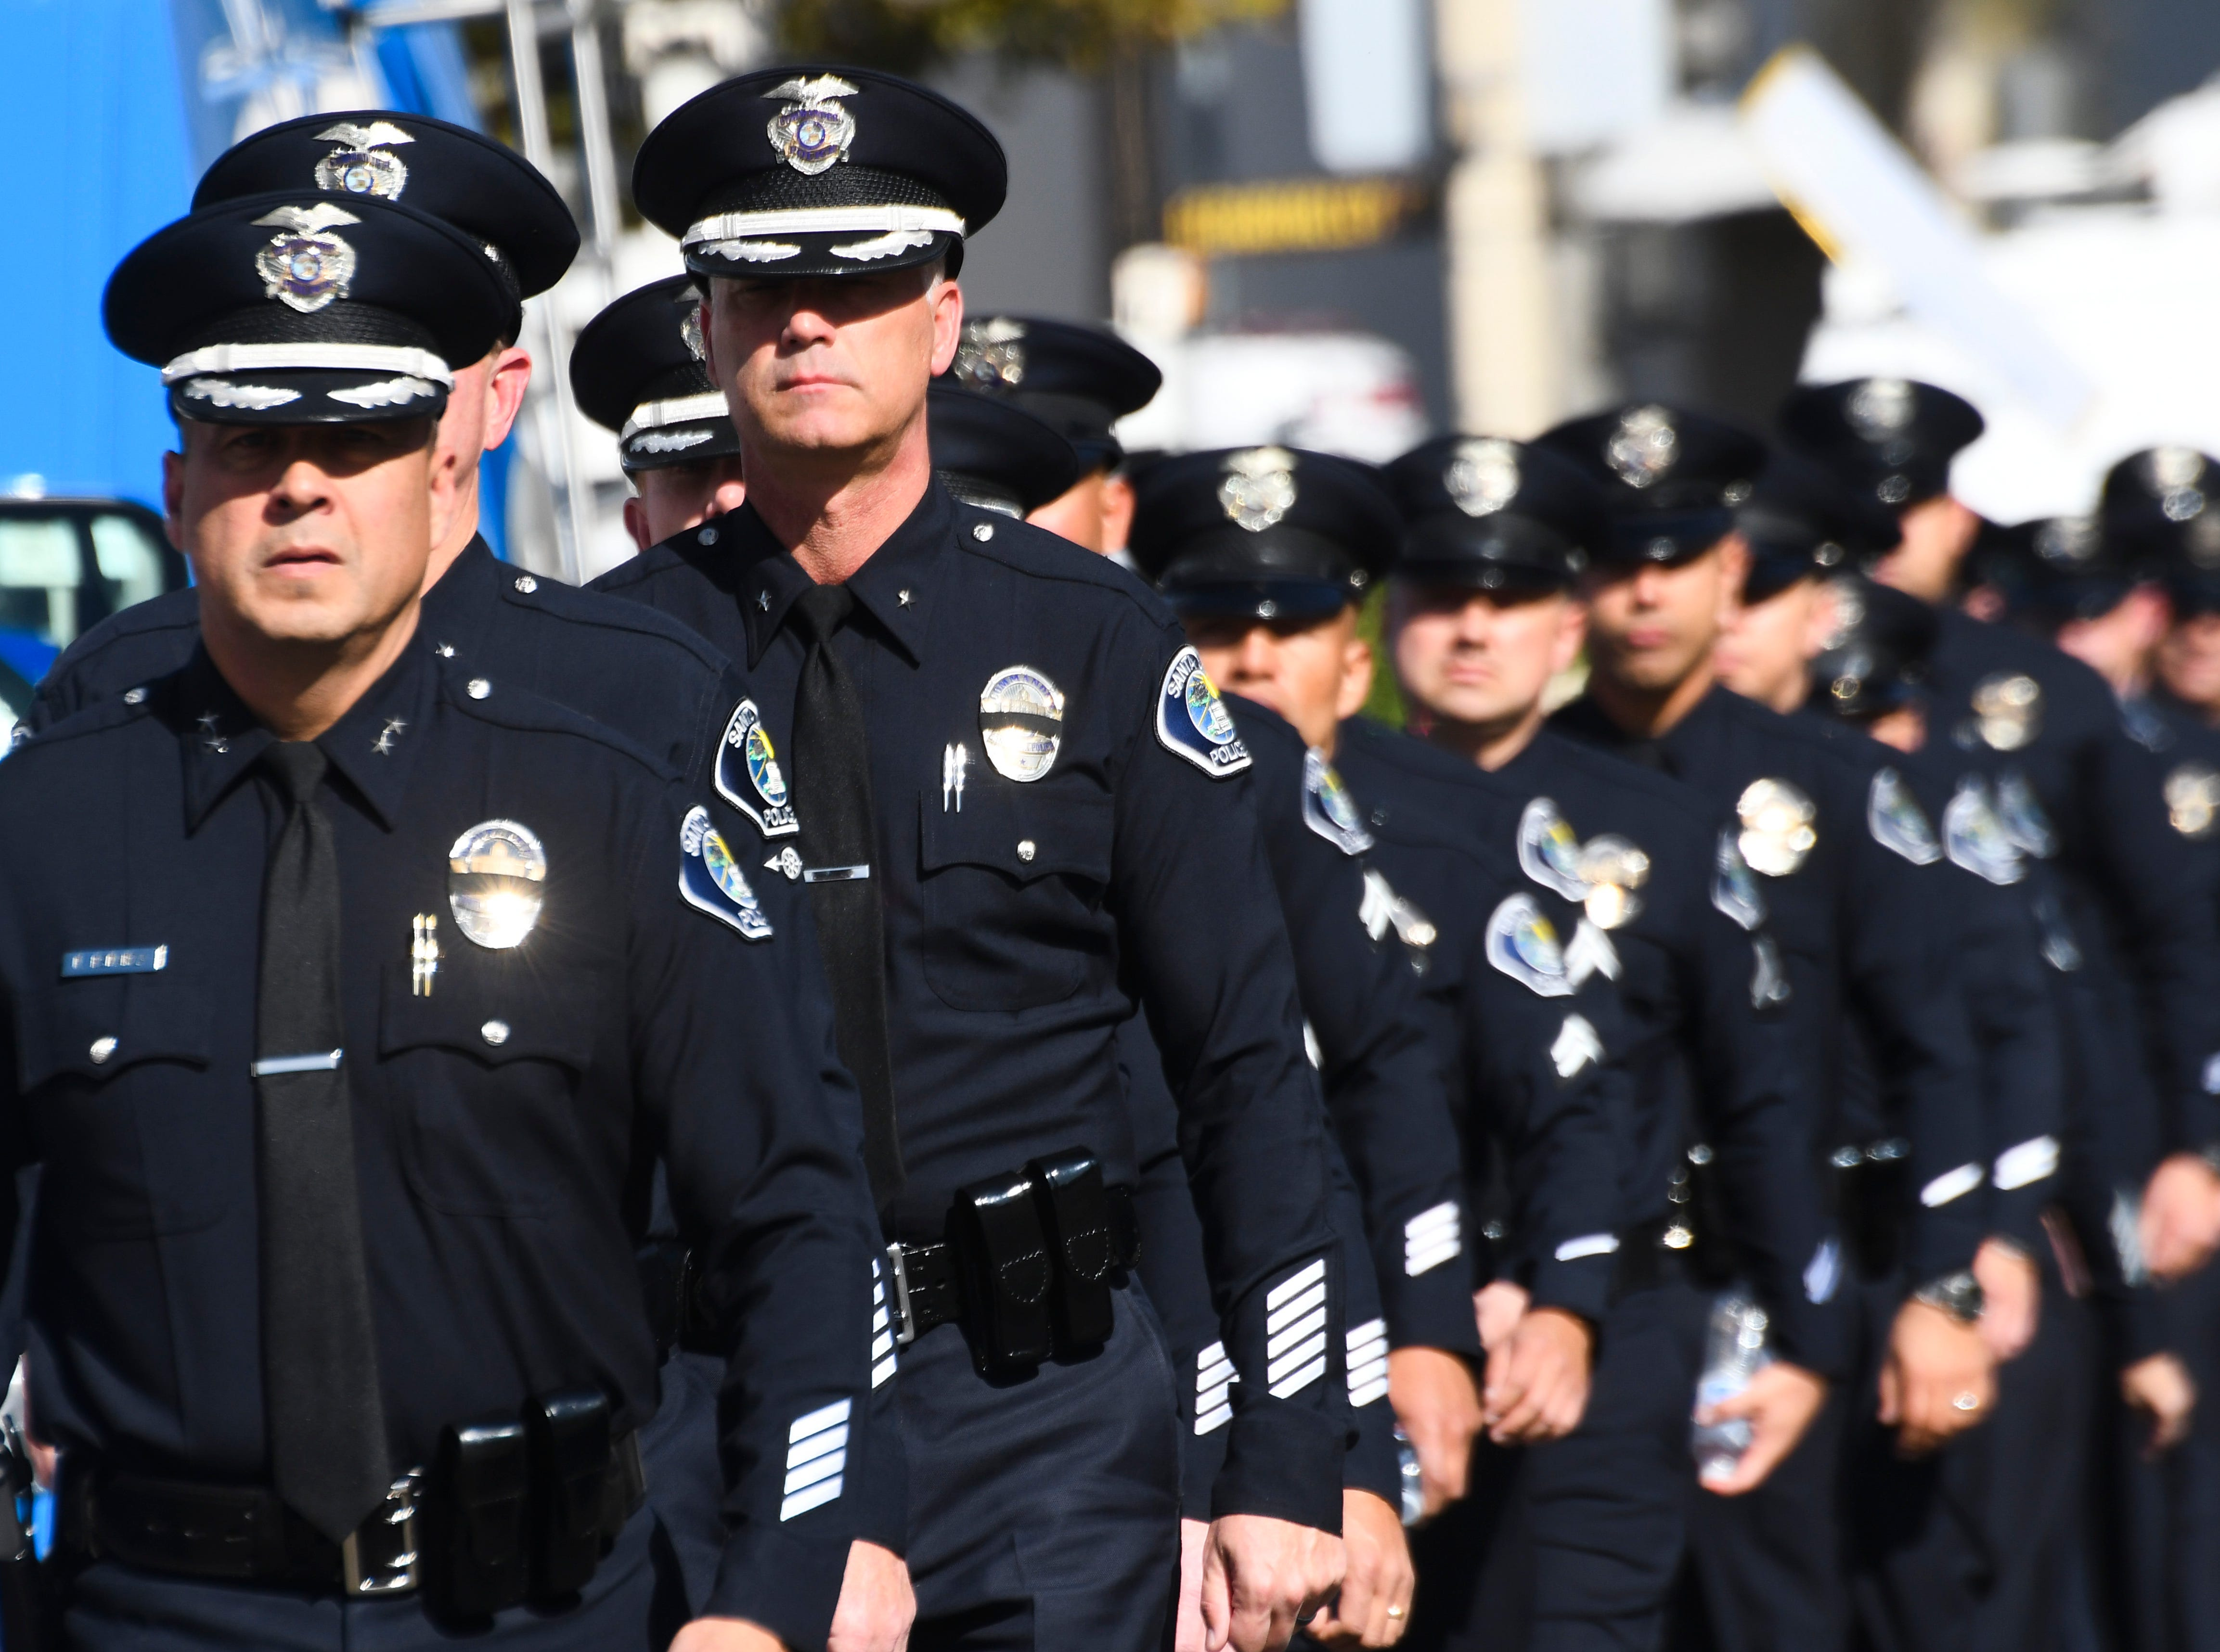 Santa Ana police officers walks to the Calvary Community Church in Ventura, Calif. on Nov. 15, 2018 for the funeral service for Ventura County Sheriff's Sgt. Ron Helus who was killed in the mass shooting at the Borderline Bar and Grill on Nov. 7, 2018.